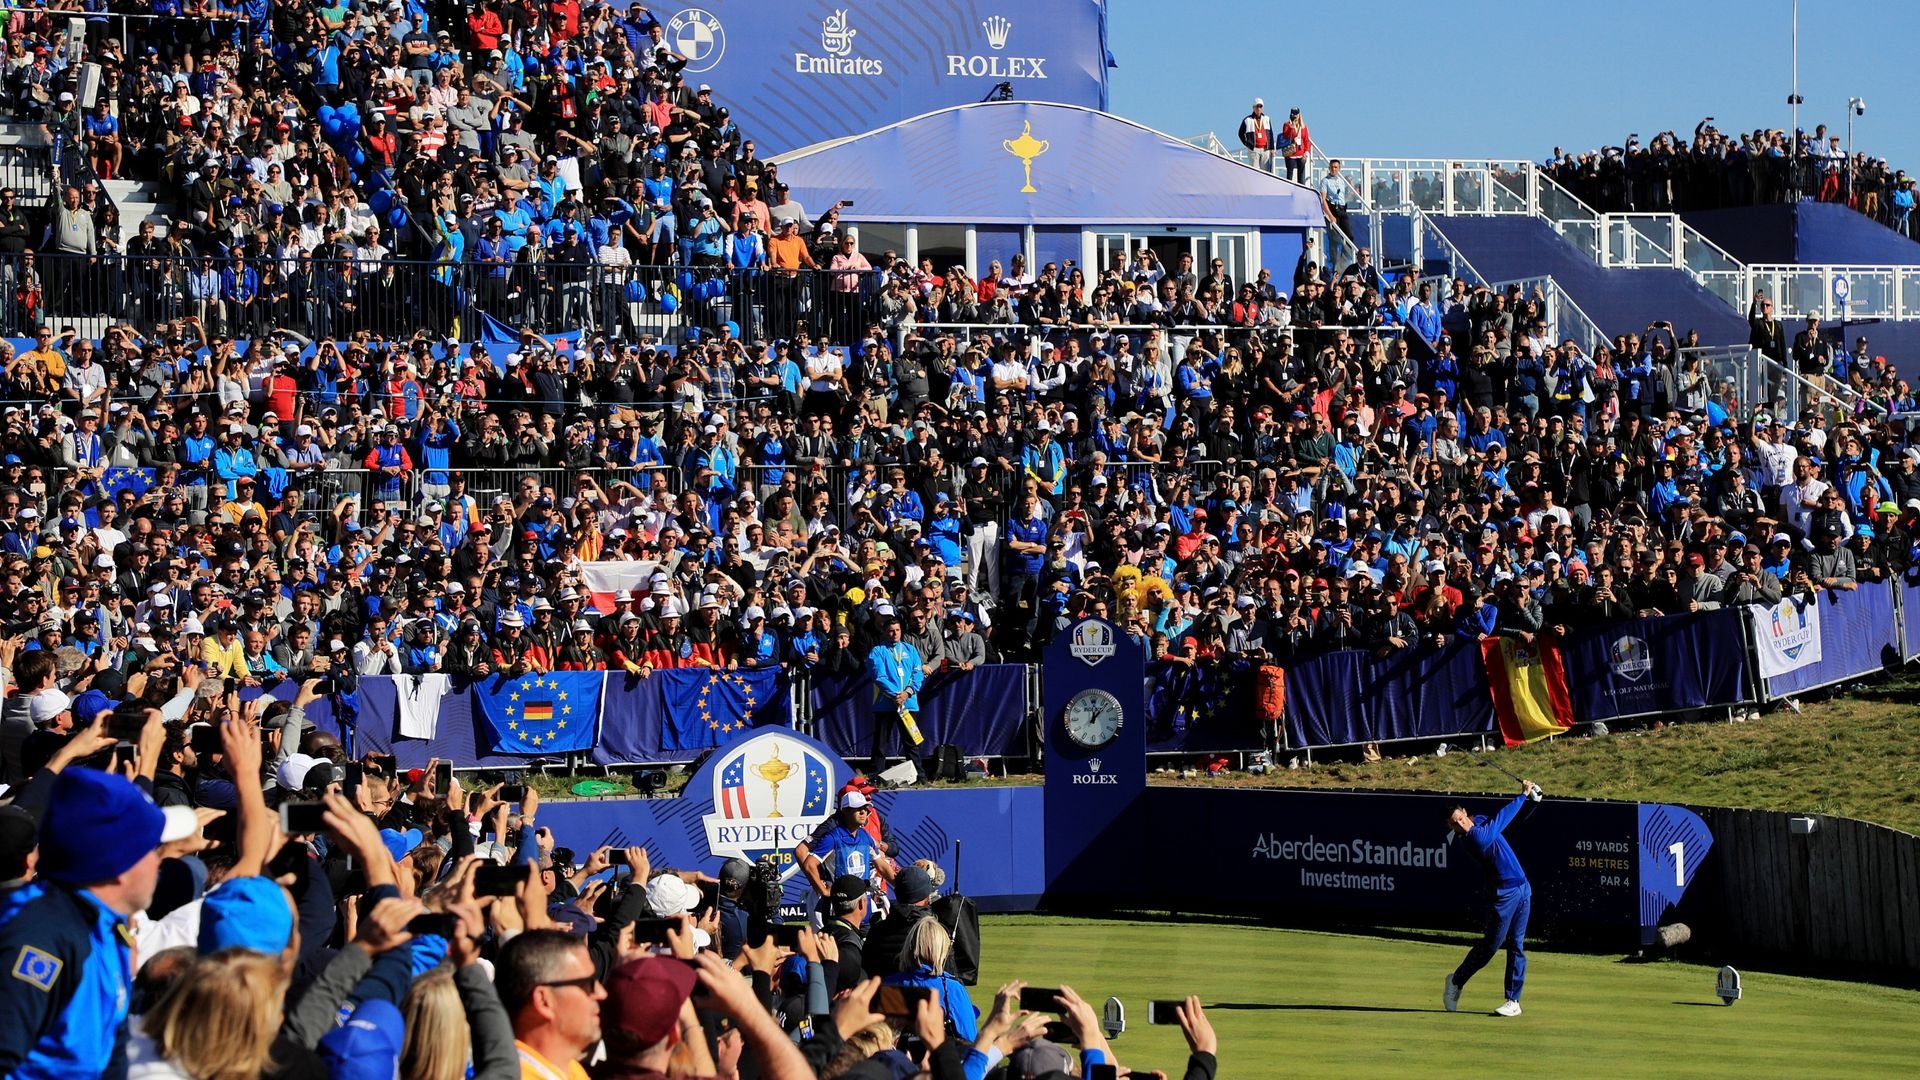 The Ryder Cup conundrum